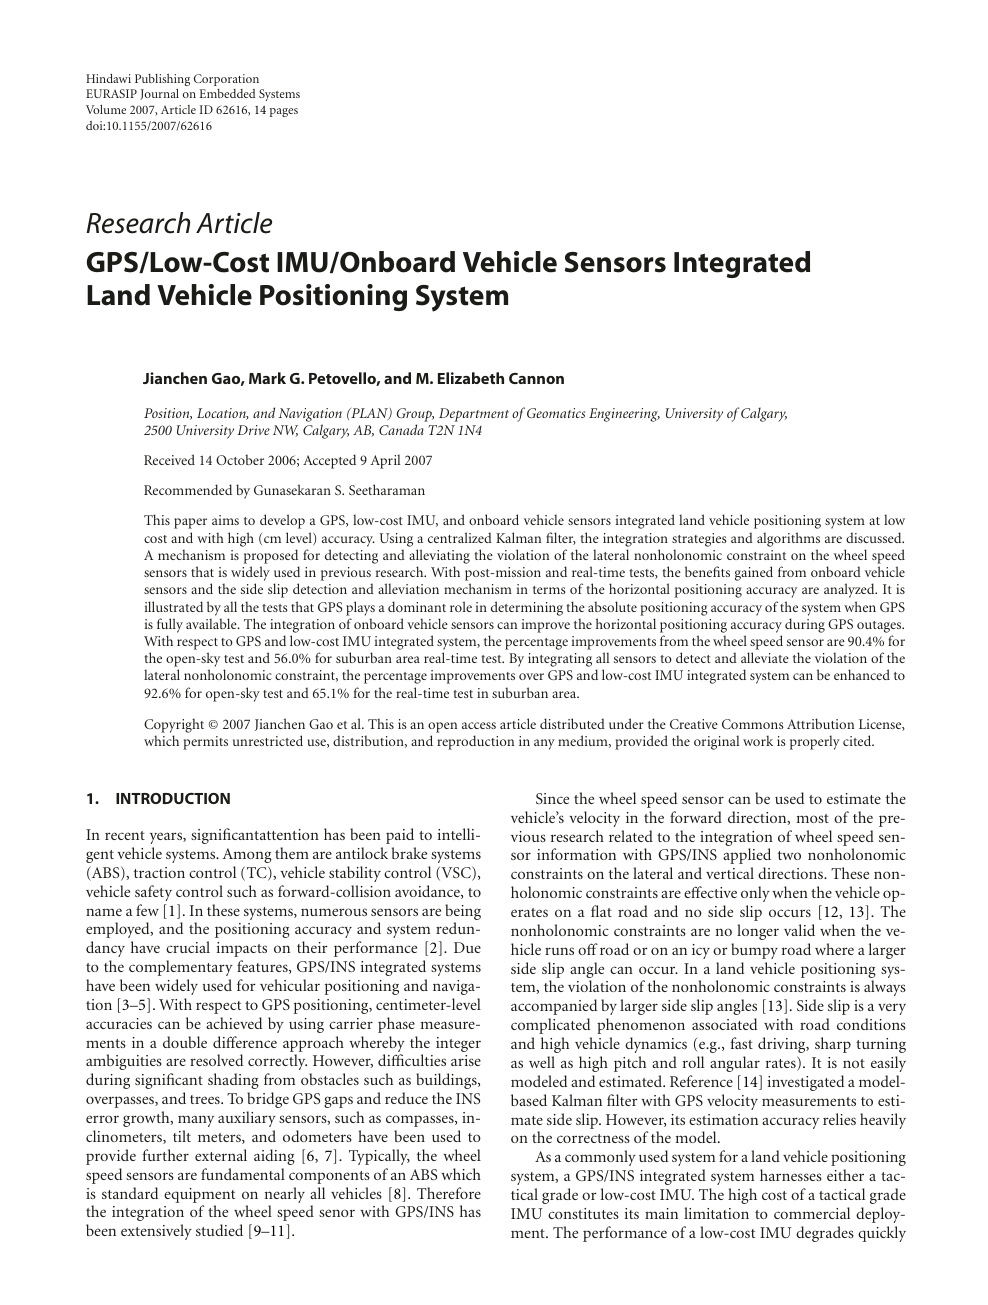 GPS/Low-Cost IMU/Onboard Vehicle Sensors Integrated Land